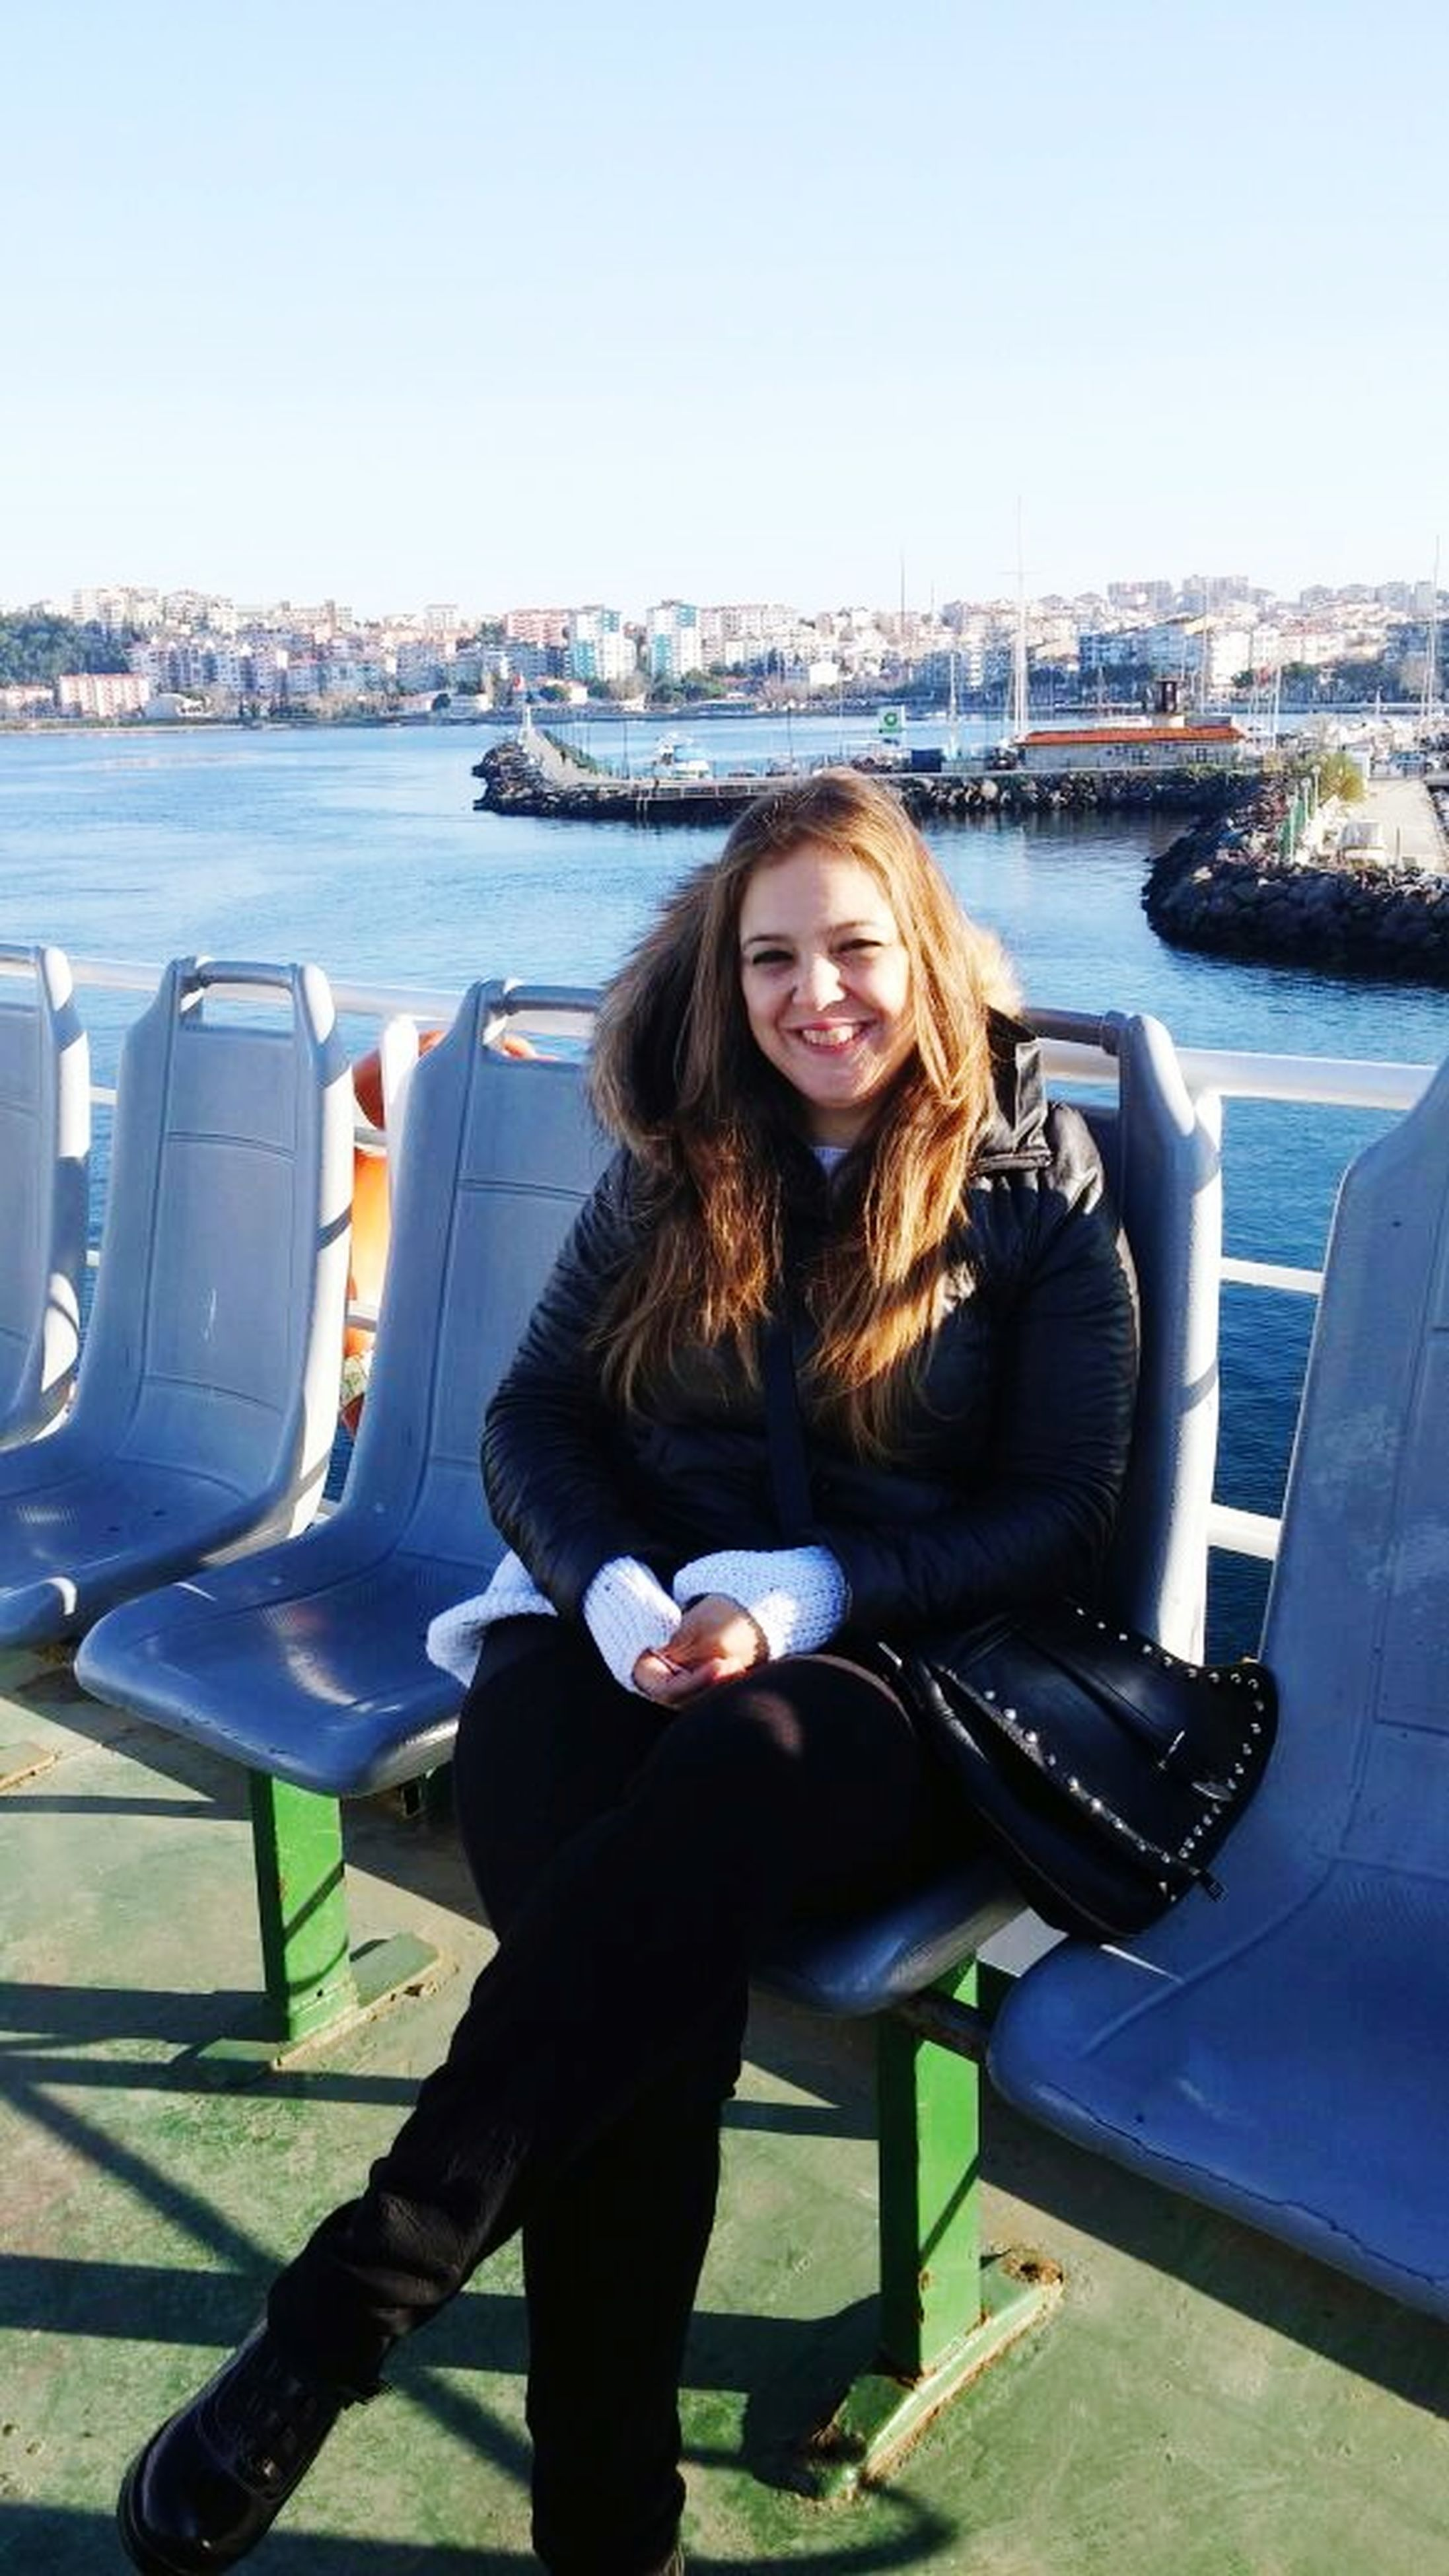 young adult, water, person, lifestyles, young women, leisure activity, casual clothing, portrait, smiling, sitting, looking at camera, sunglasses, long hair, transportation, nautical vessel, happiness, sea, waist up